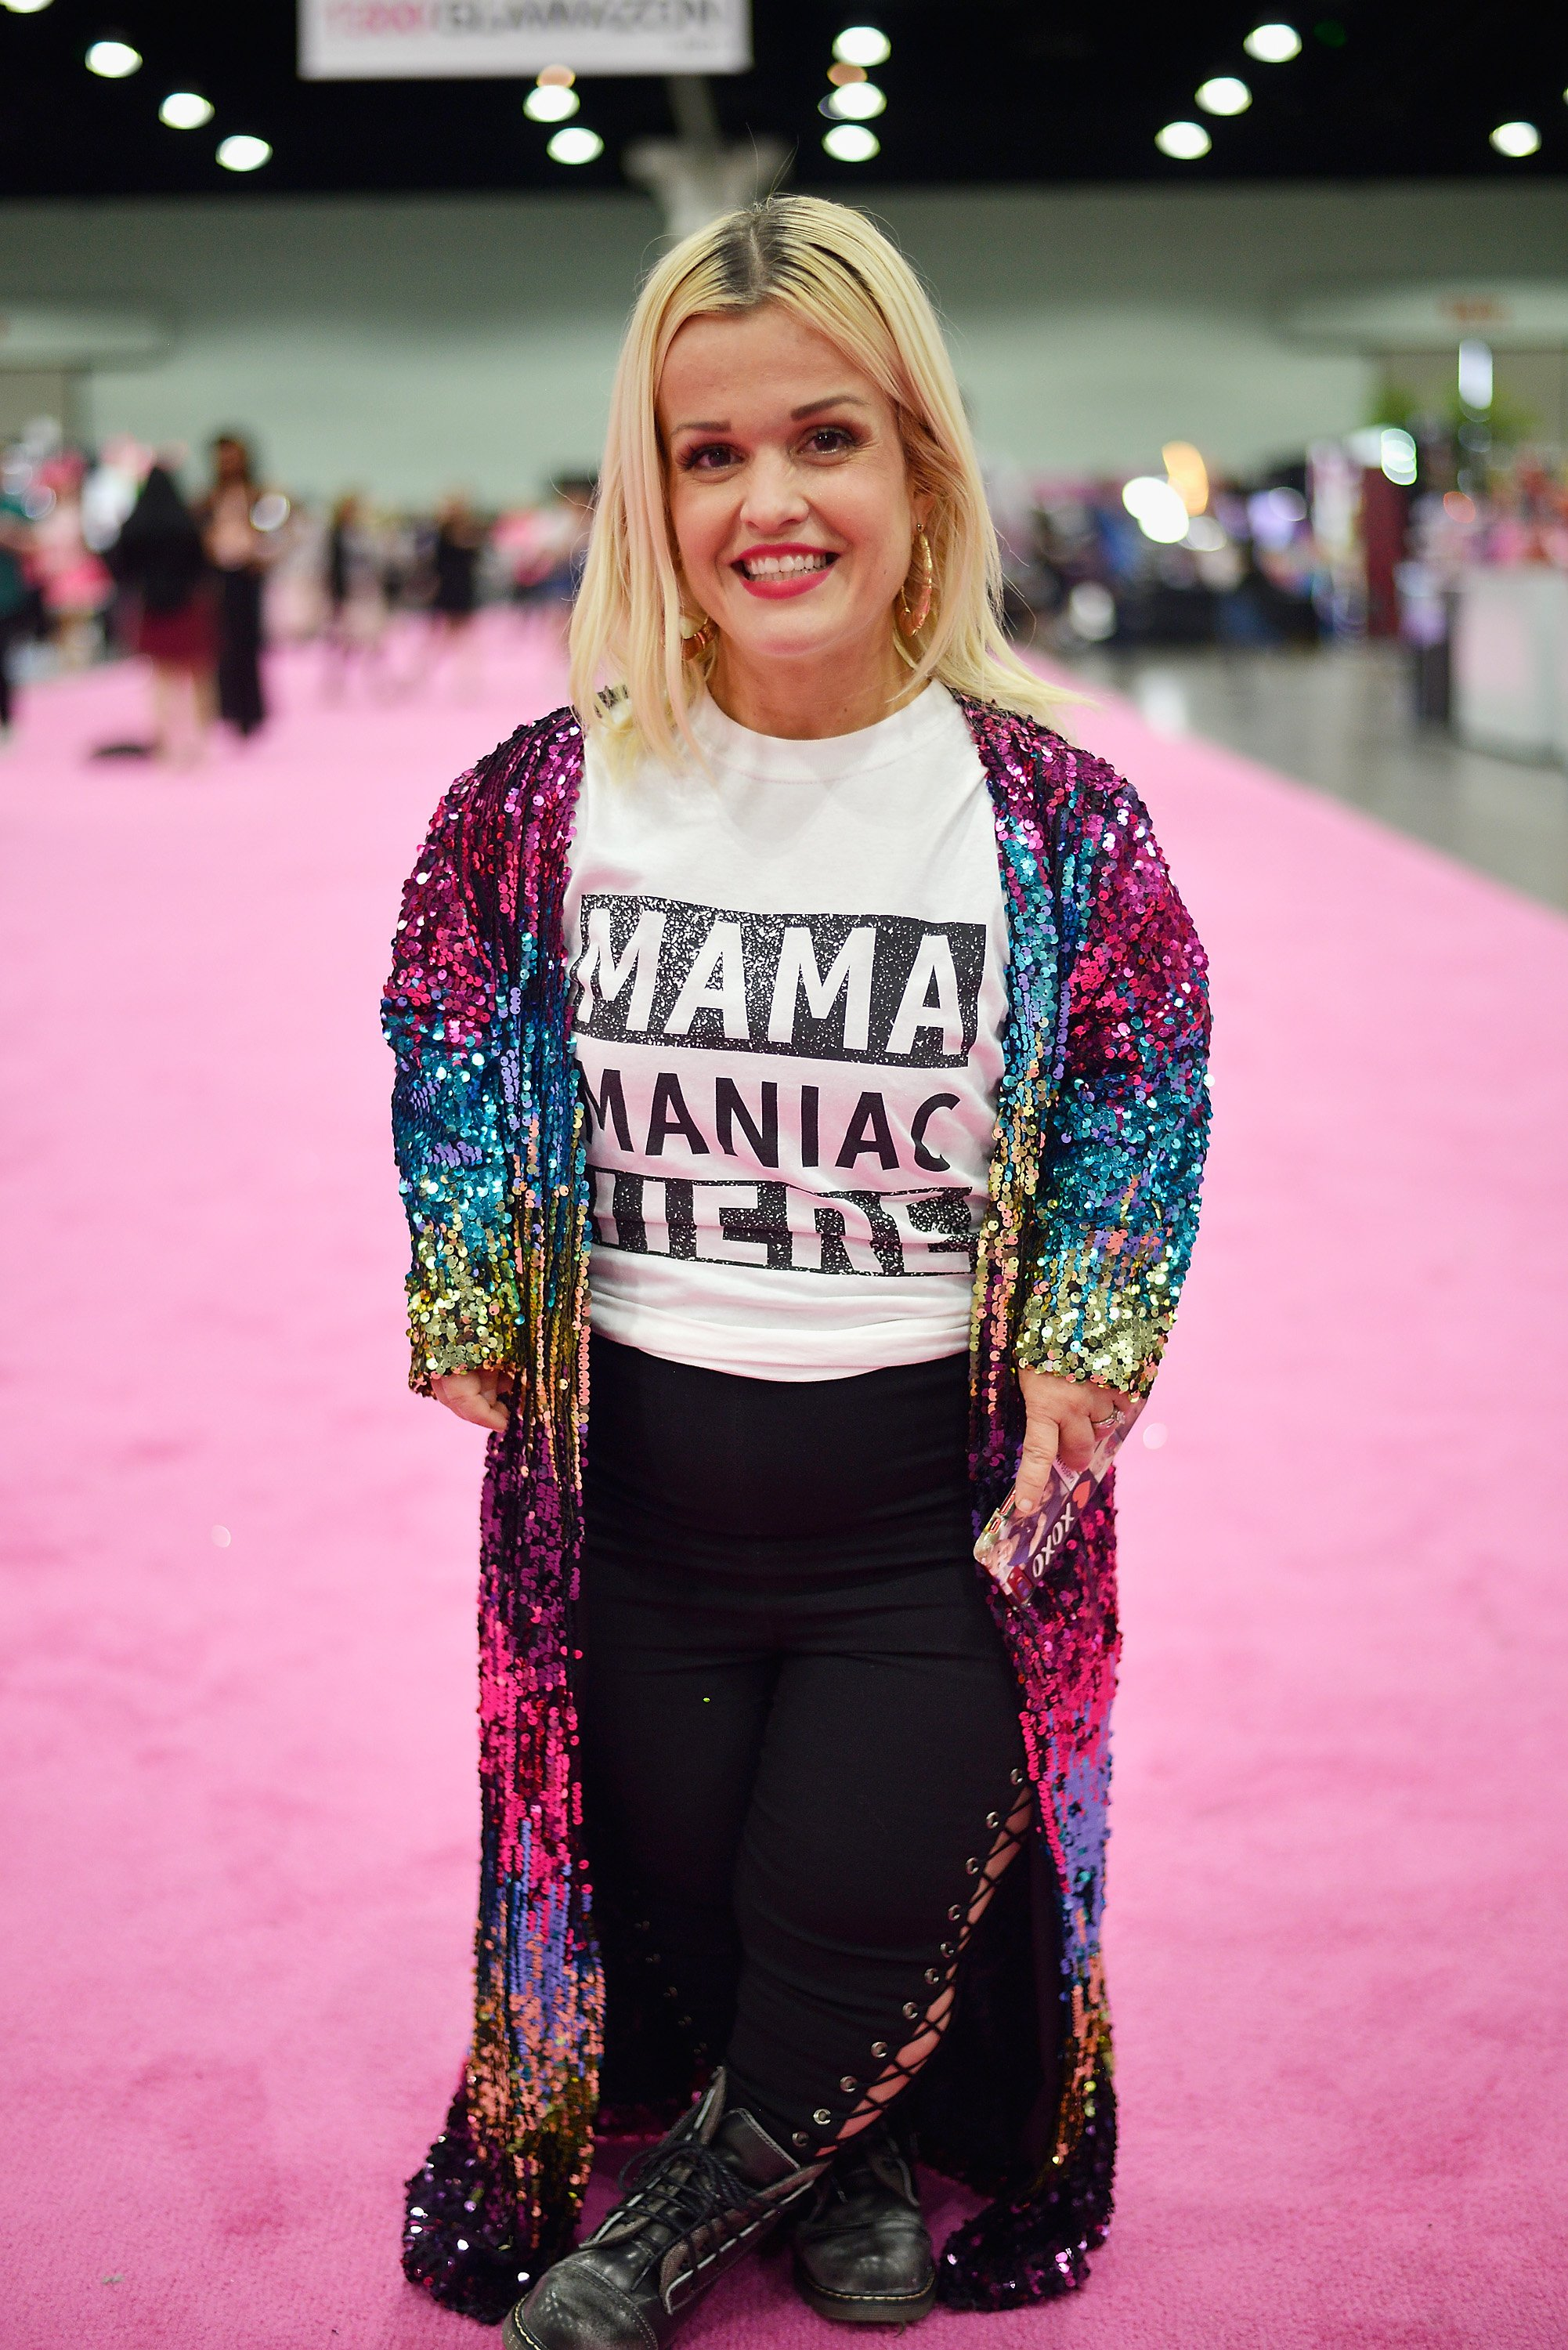 Terra Jolé attends RuPaul's DragCon in Los Angeles, California on May 13, 2018 | Photo: Getty Images